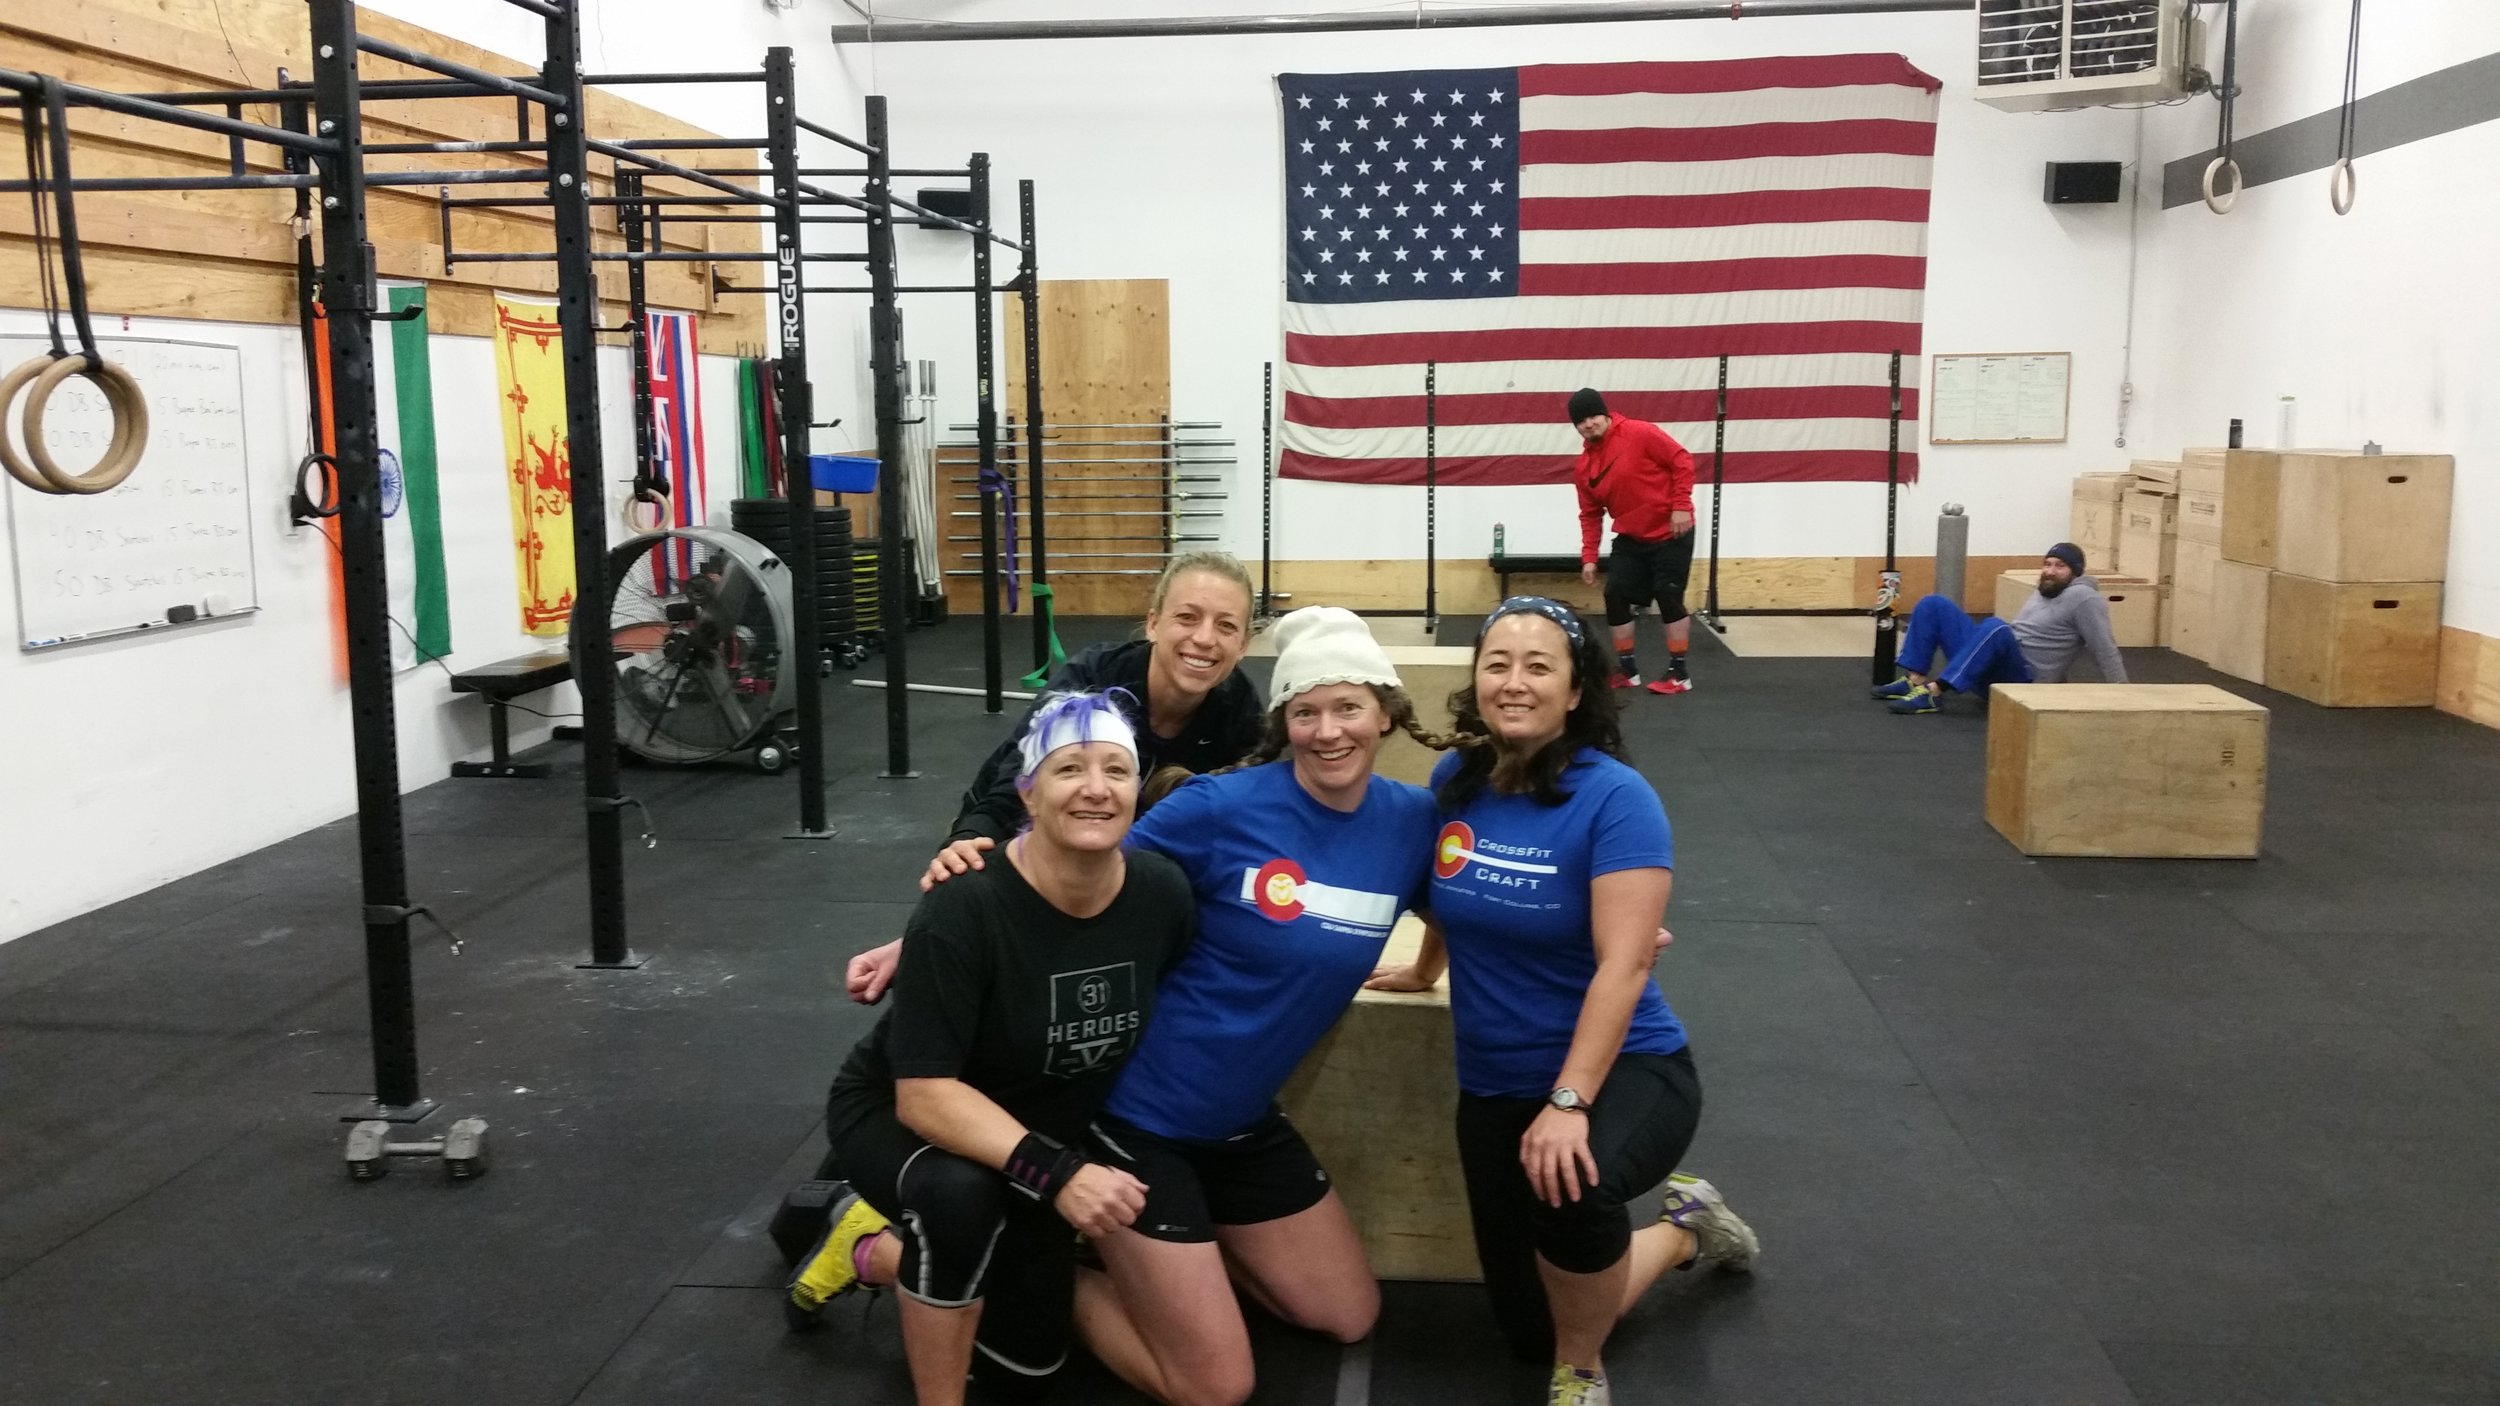 Kim Liz Colleen Lynn Kieran Bryan Open 2017 CrossFit Craft Games